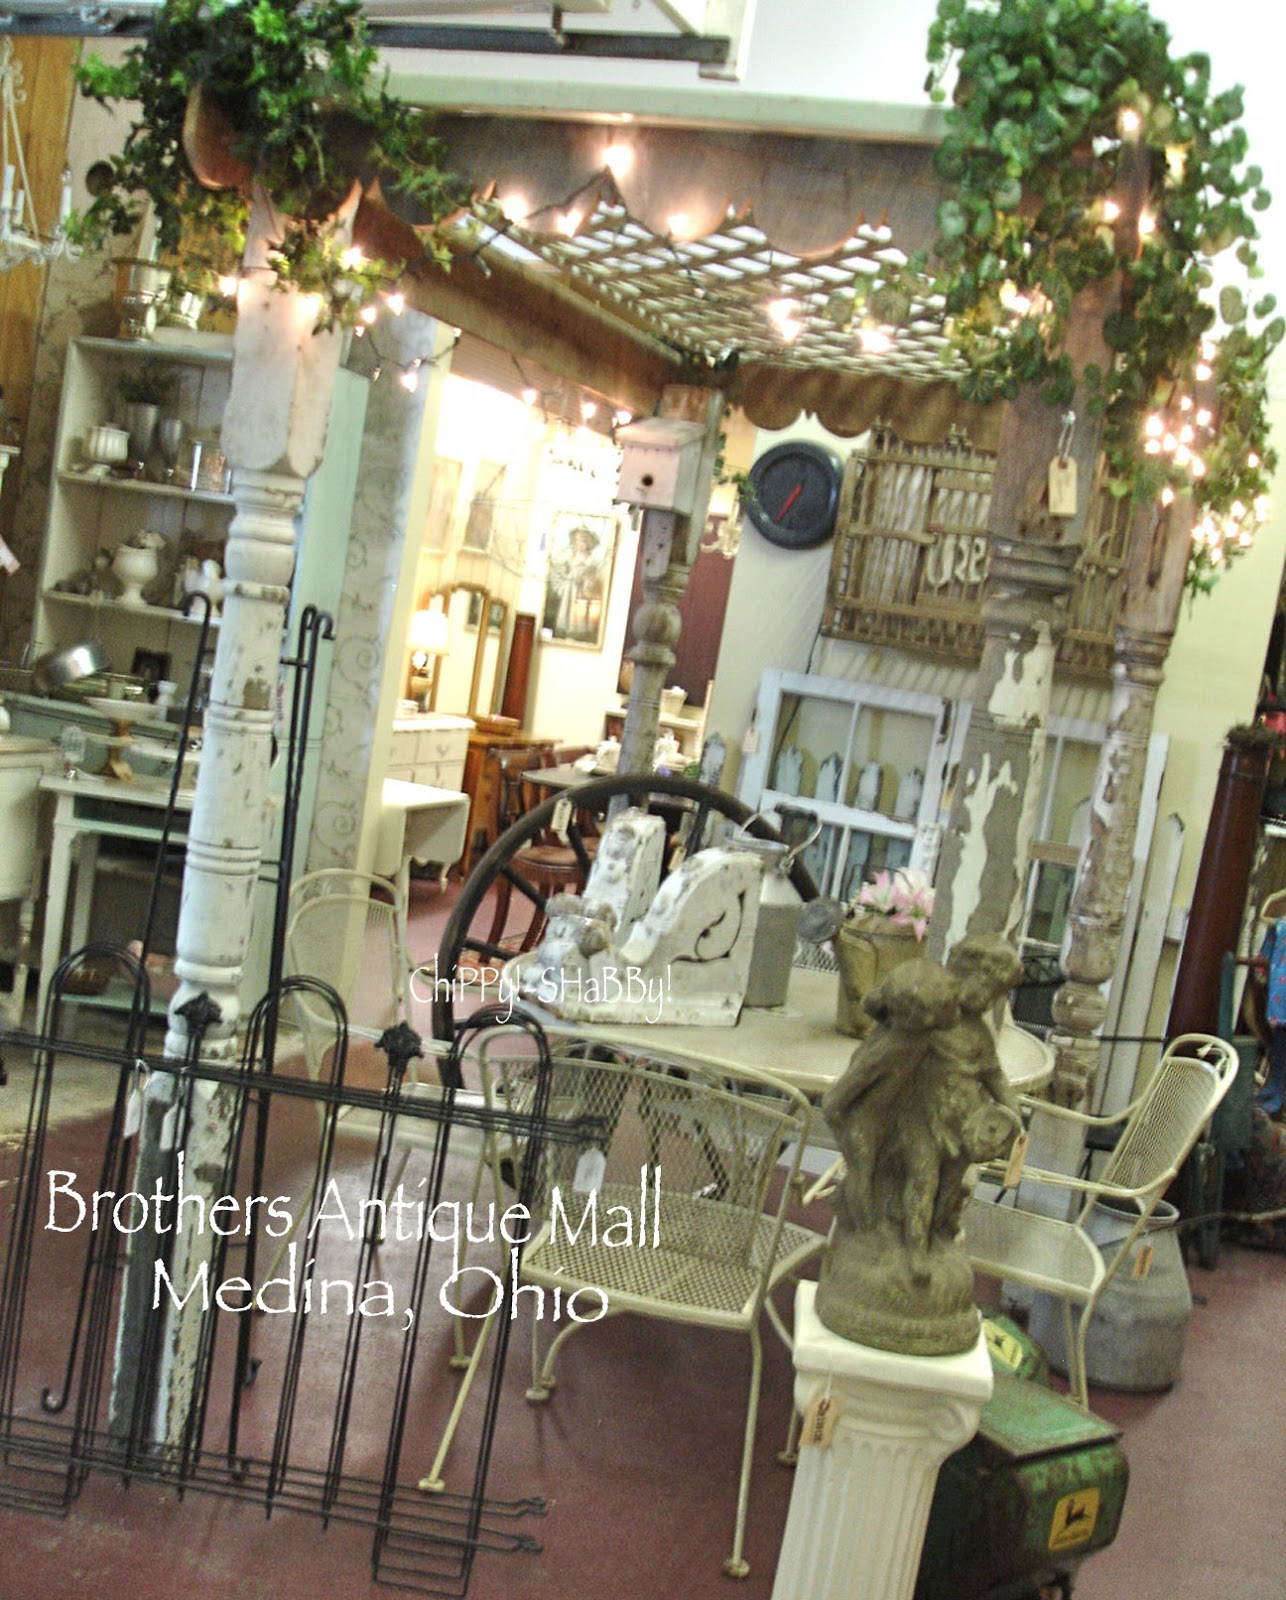 Shabby Chic Shop Chippy! - Shabby!: Shabby Shopping O*h*i*o ~ Brother's ...